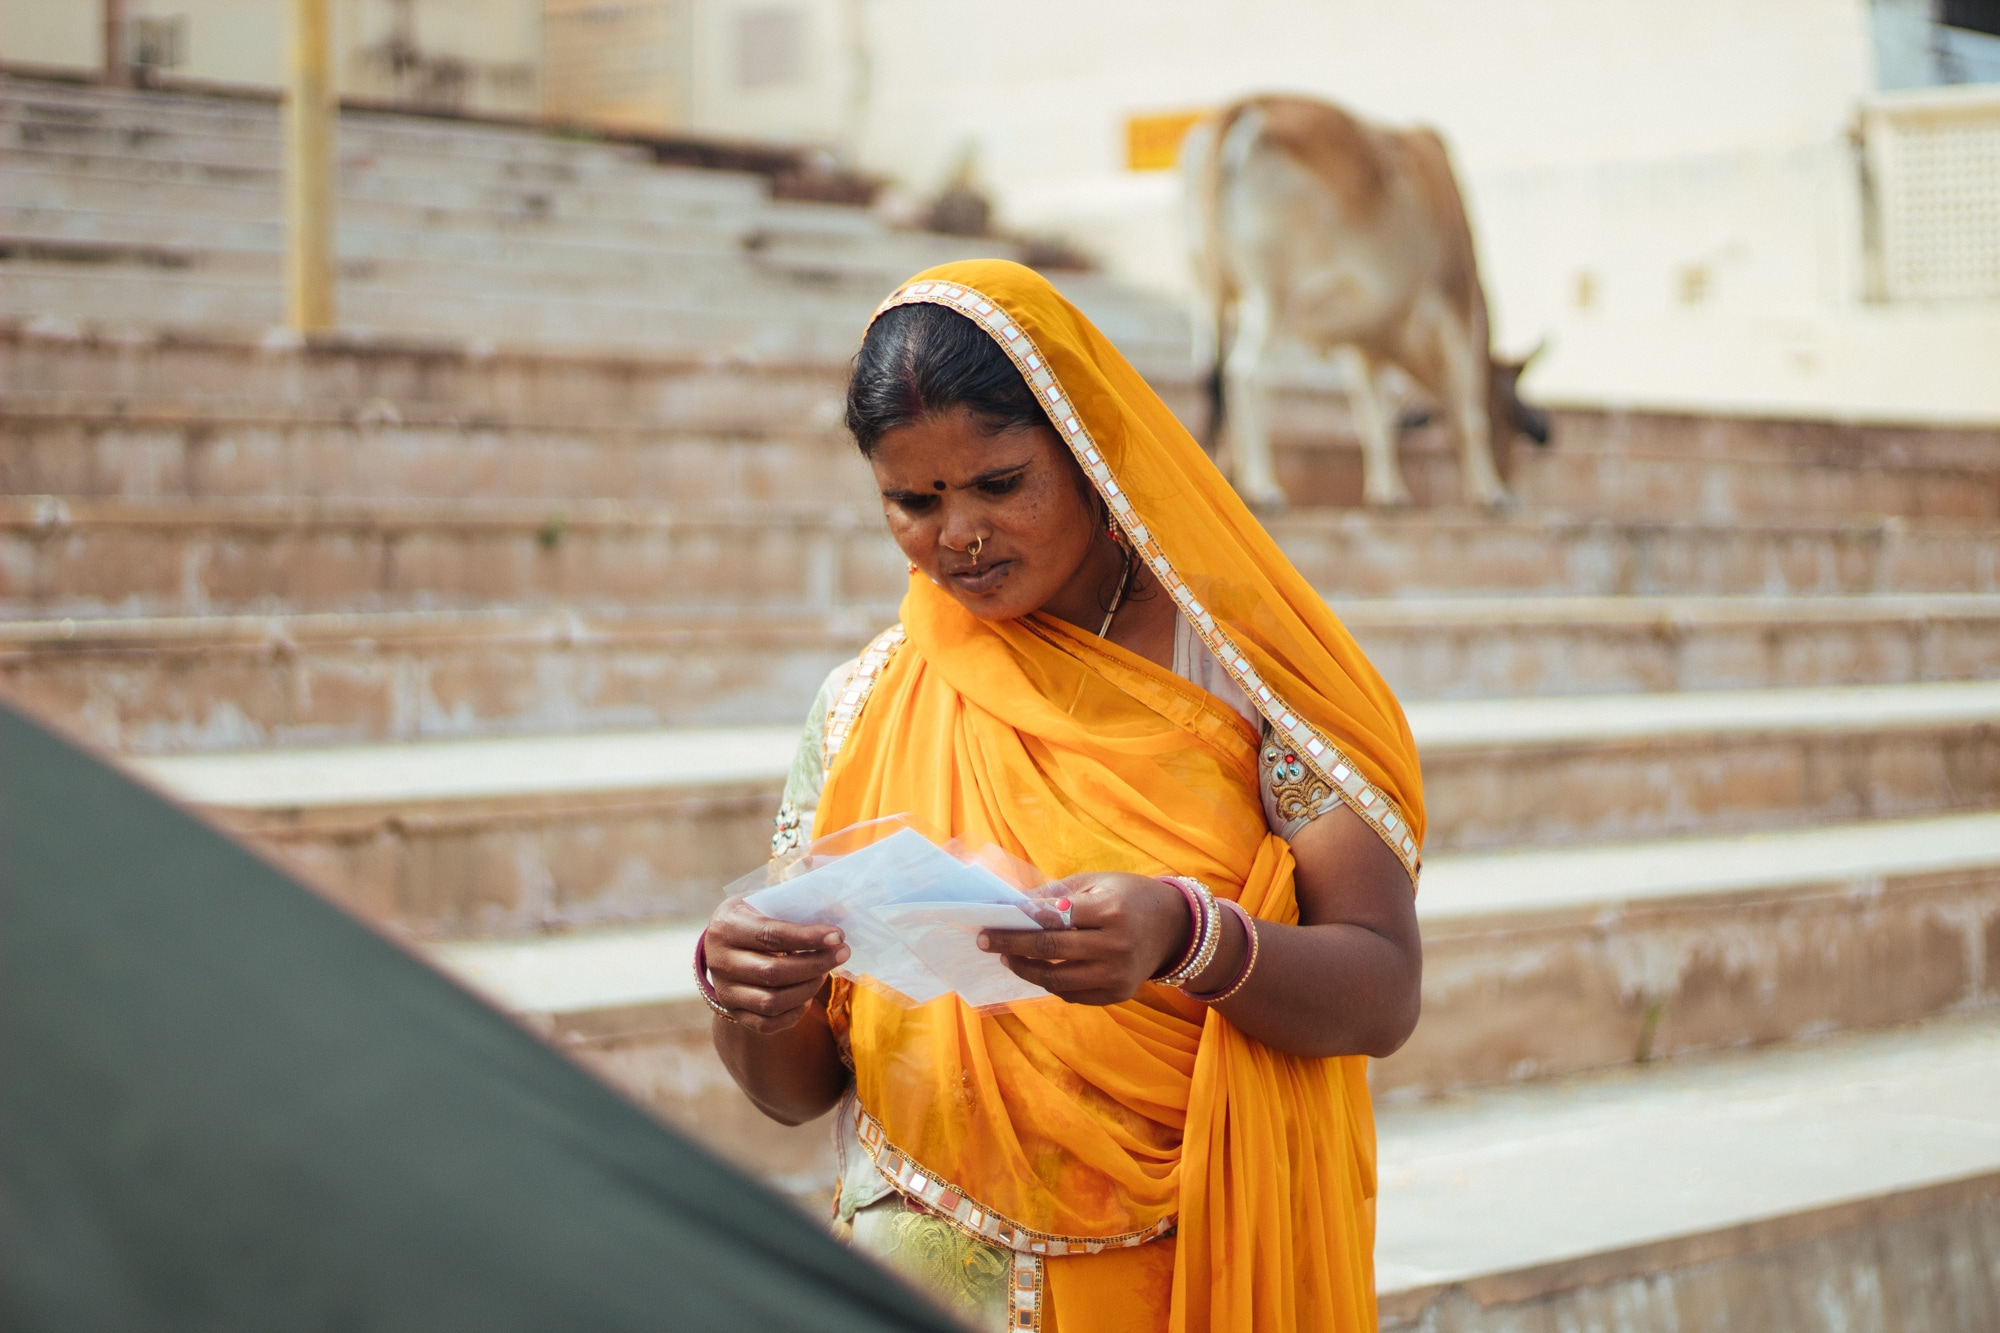 A woman looks at a picture she has just received. Photographers carry portable printers at Pushkar ghat and offer instant photography service to visitors.